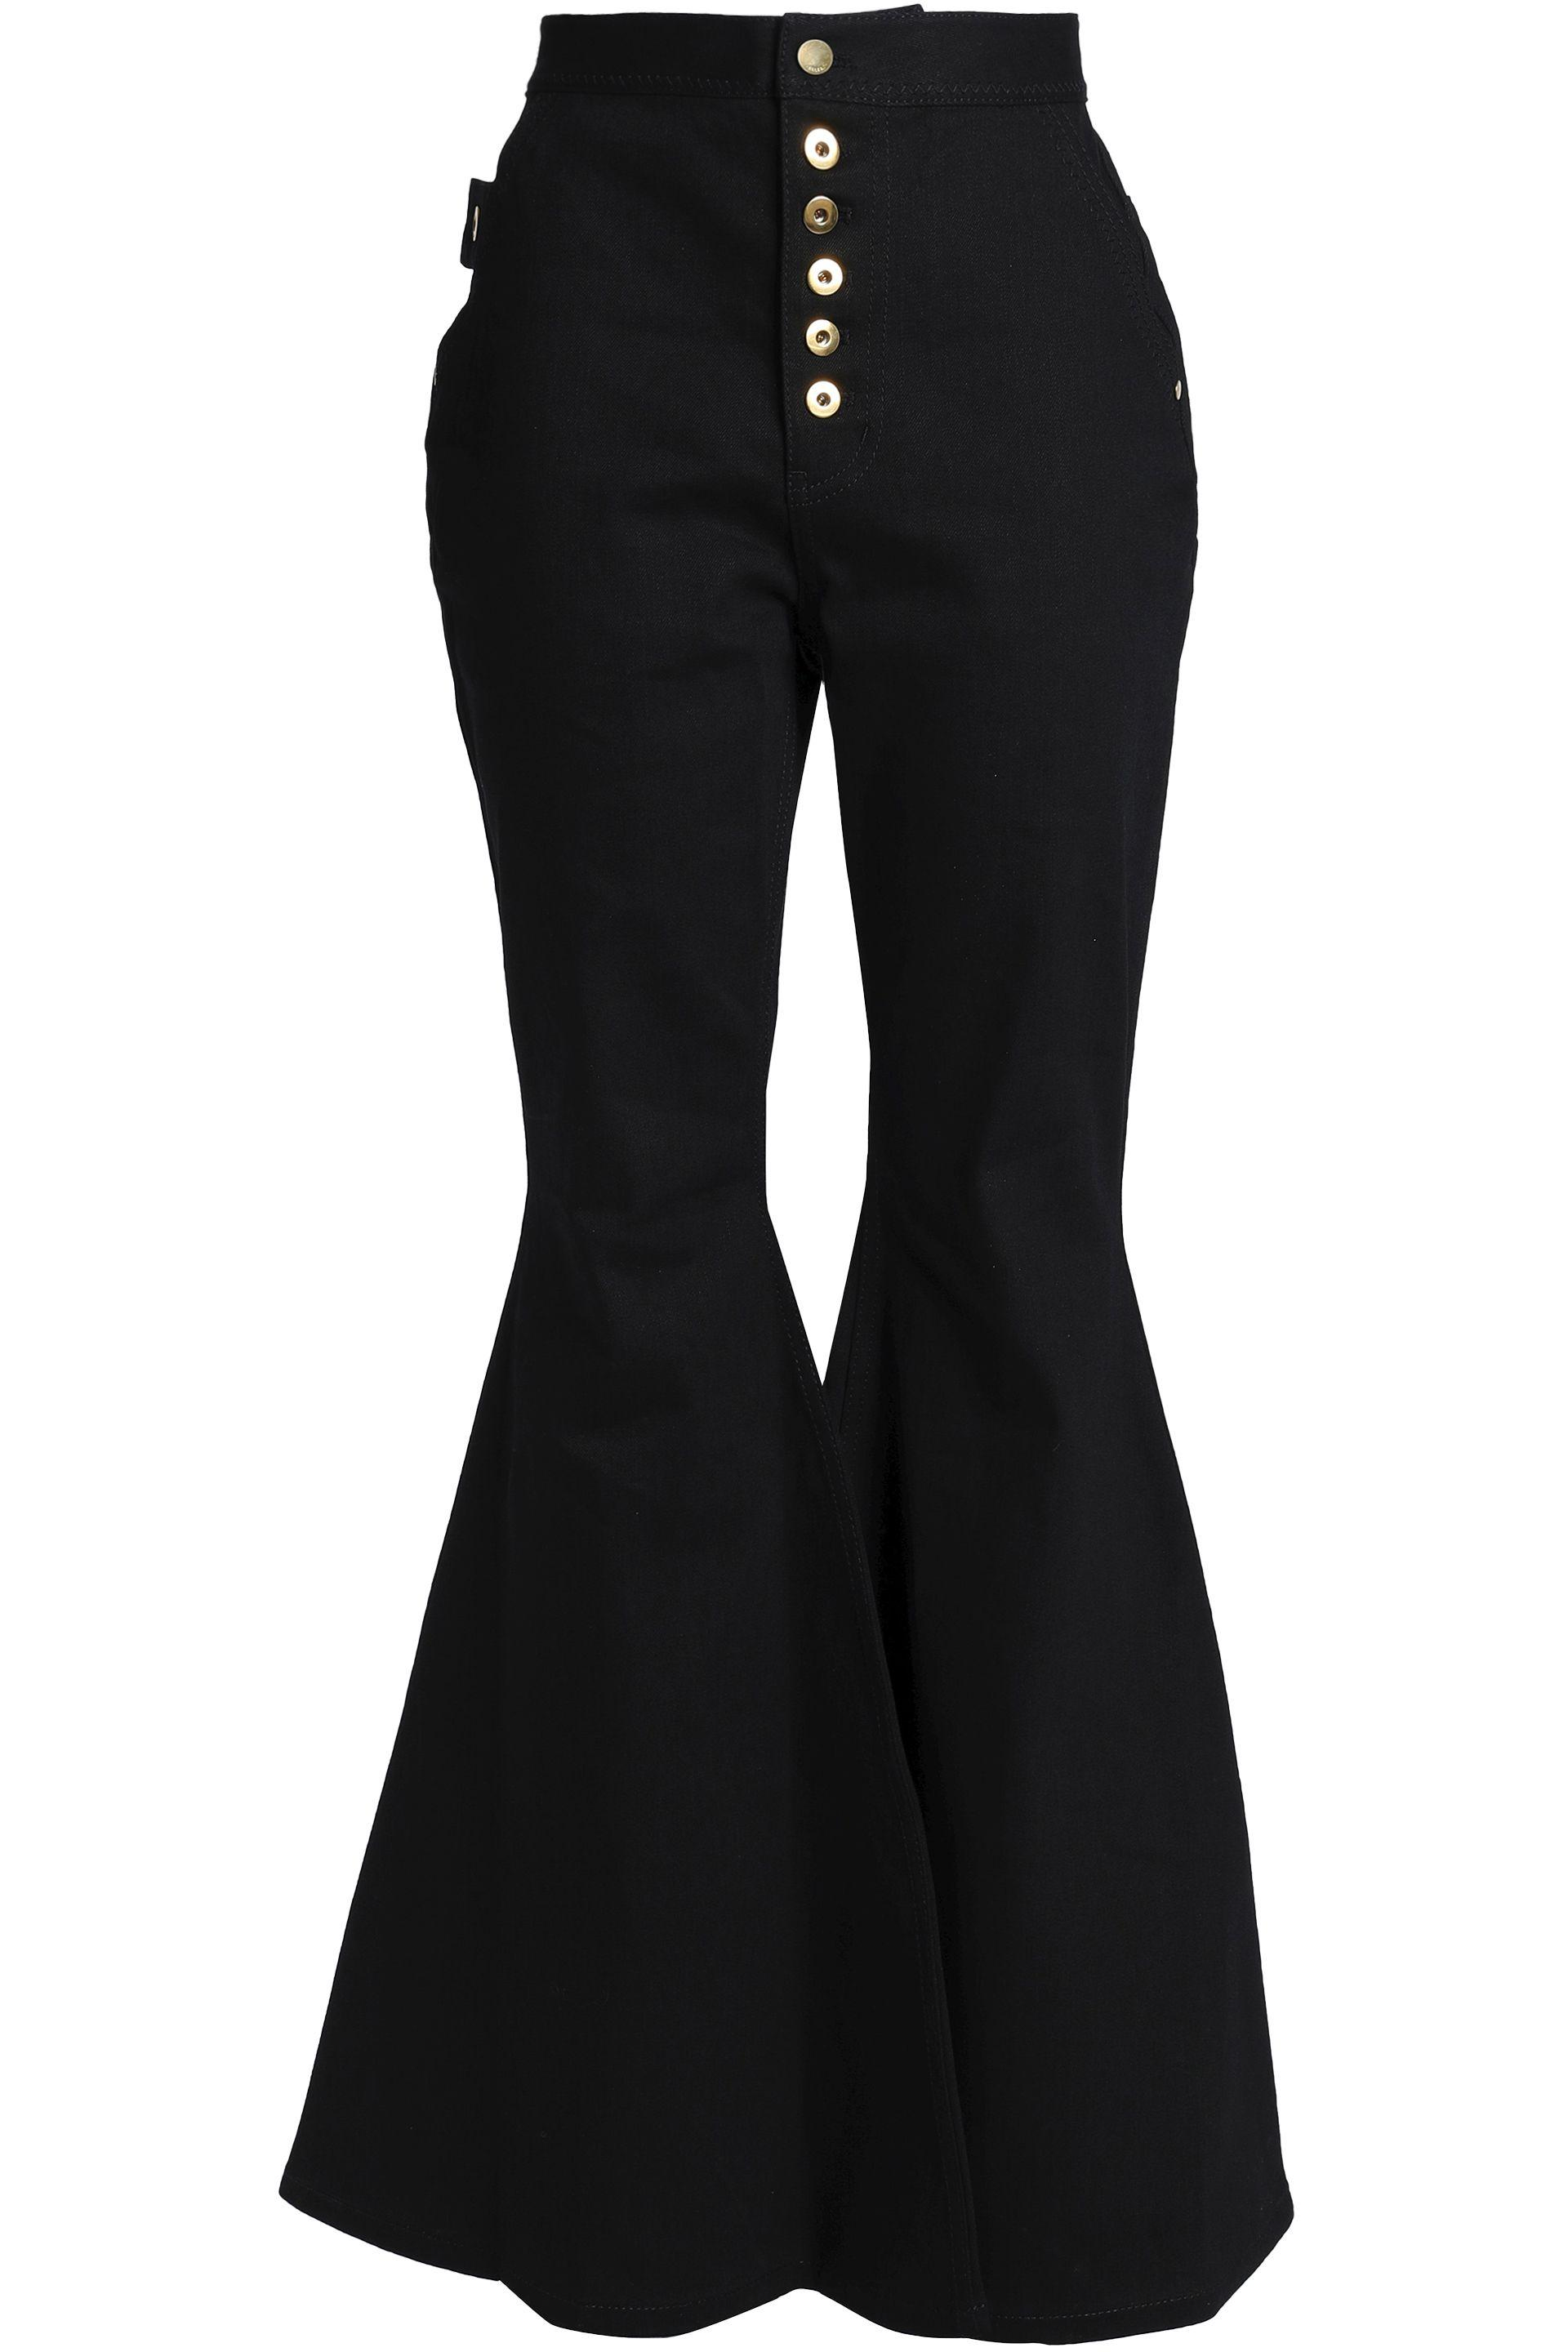 87f3c650902d Ellery. Women's Woman Ophelia Button-detailed High-rise Flared Jeans Black